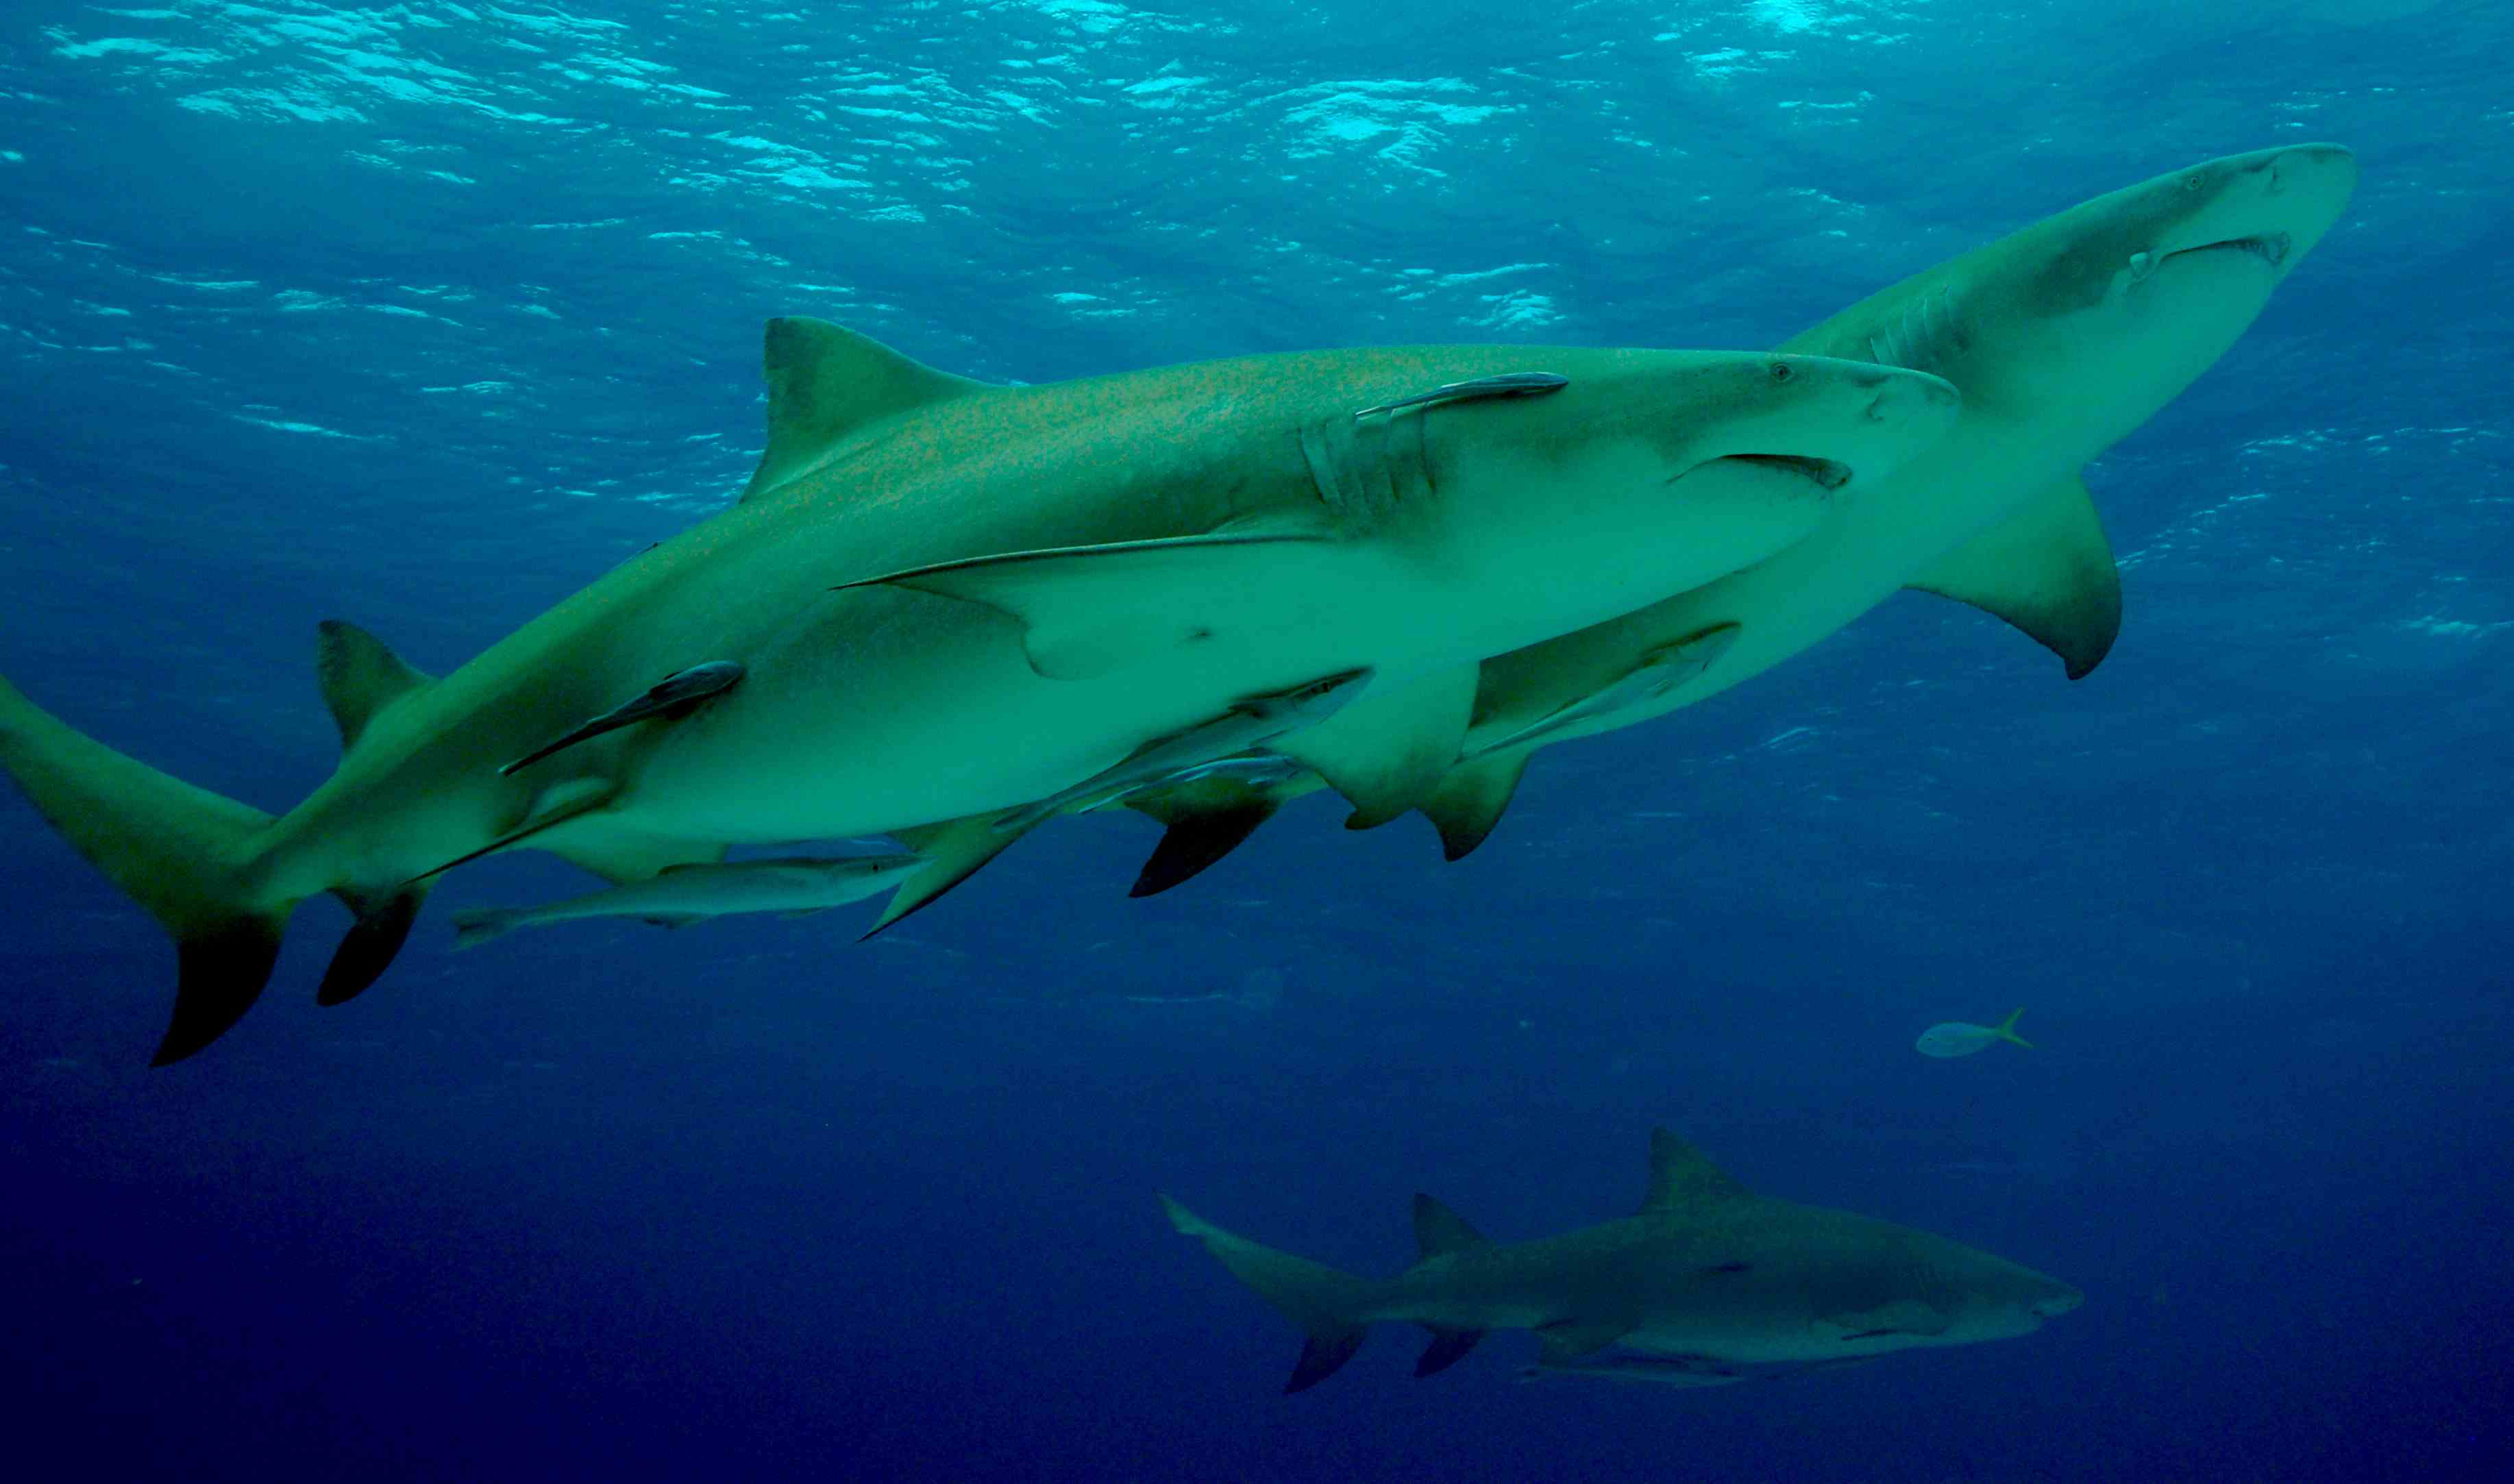 Lemon sharks live in groups and are believed to form friendships with each other.